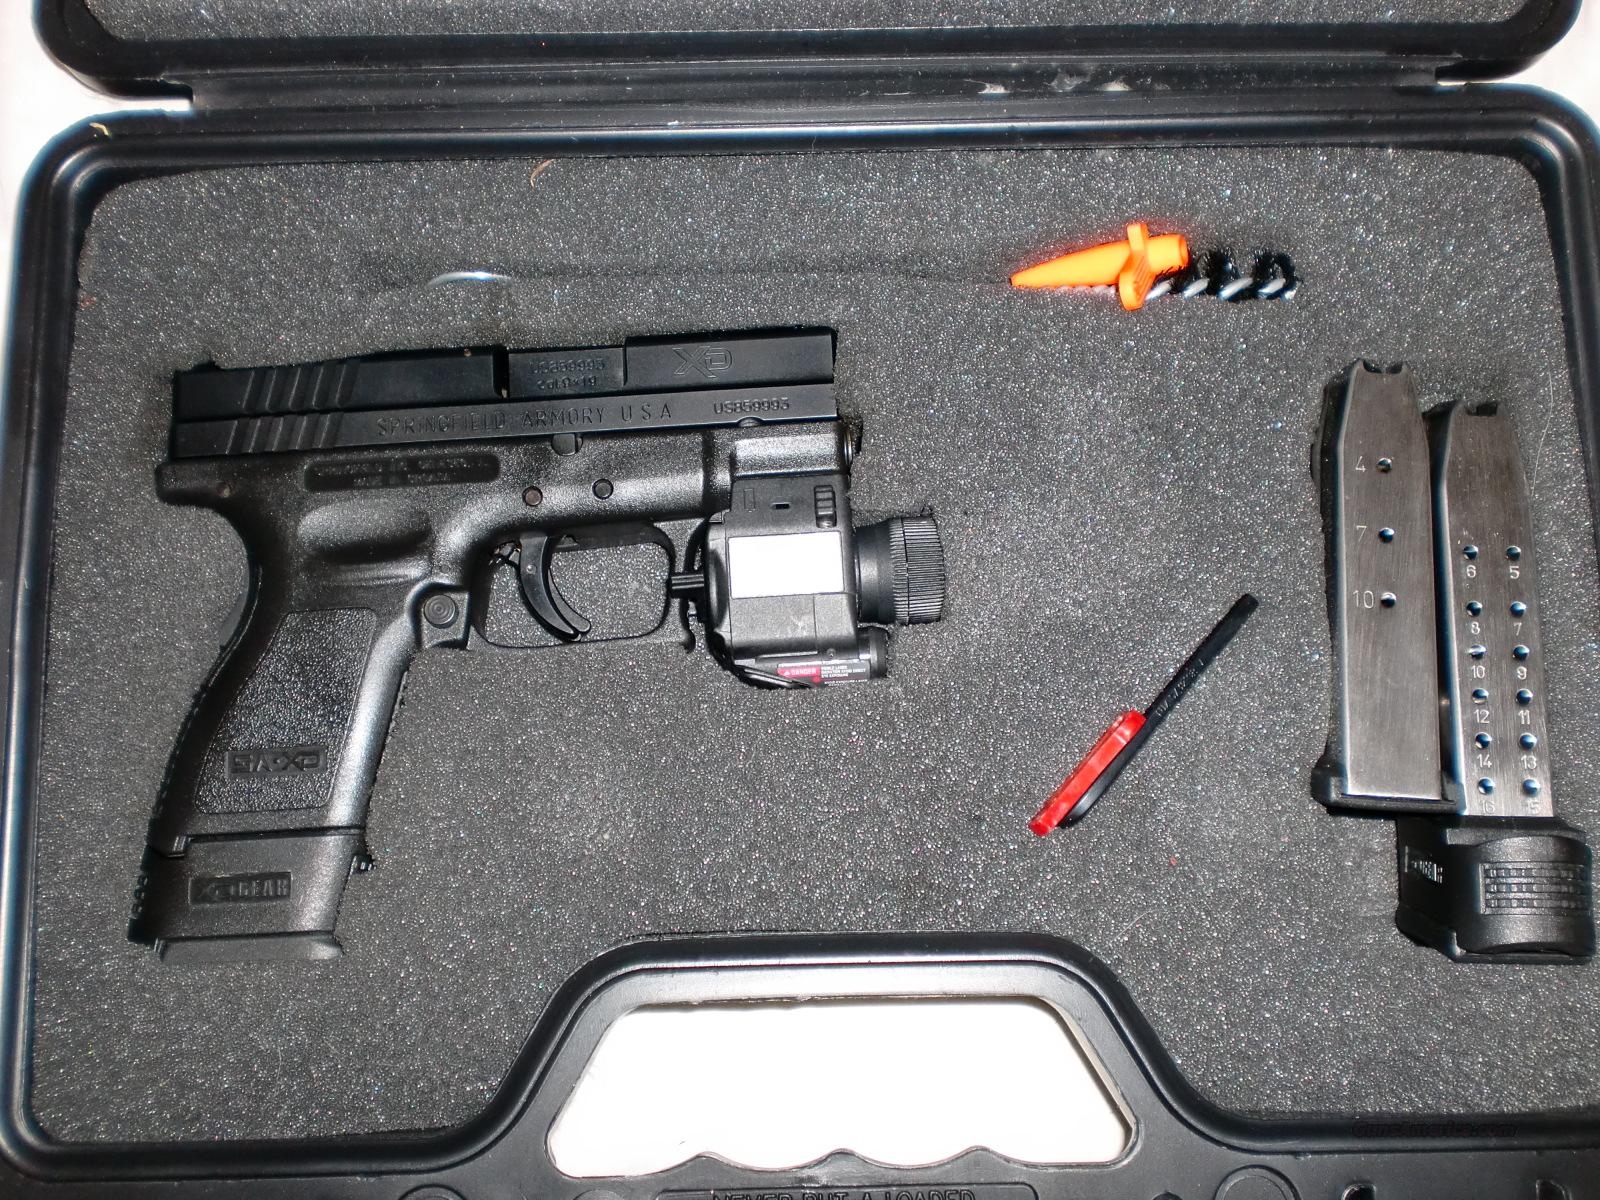 SPRINGFIELD ARMORY XD-9 SUB-COMPACT 9mm w/ LASER+LIGHT COMBO